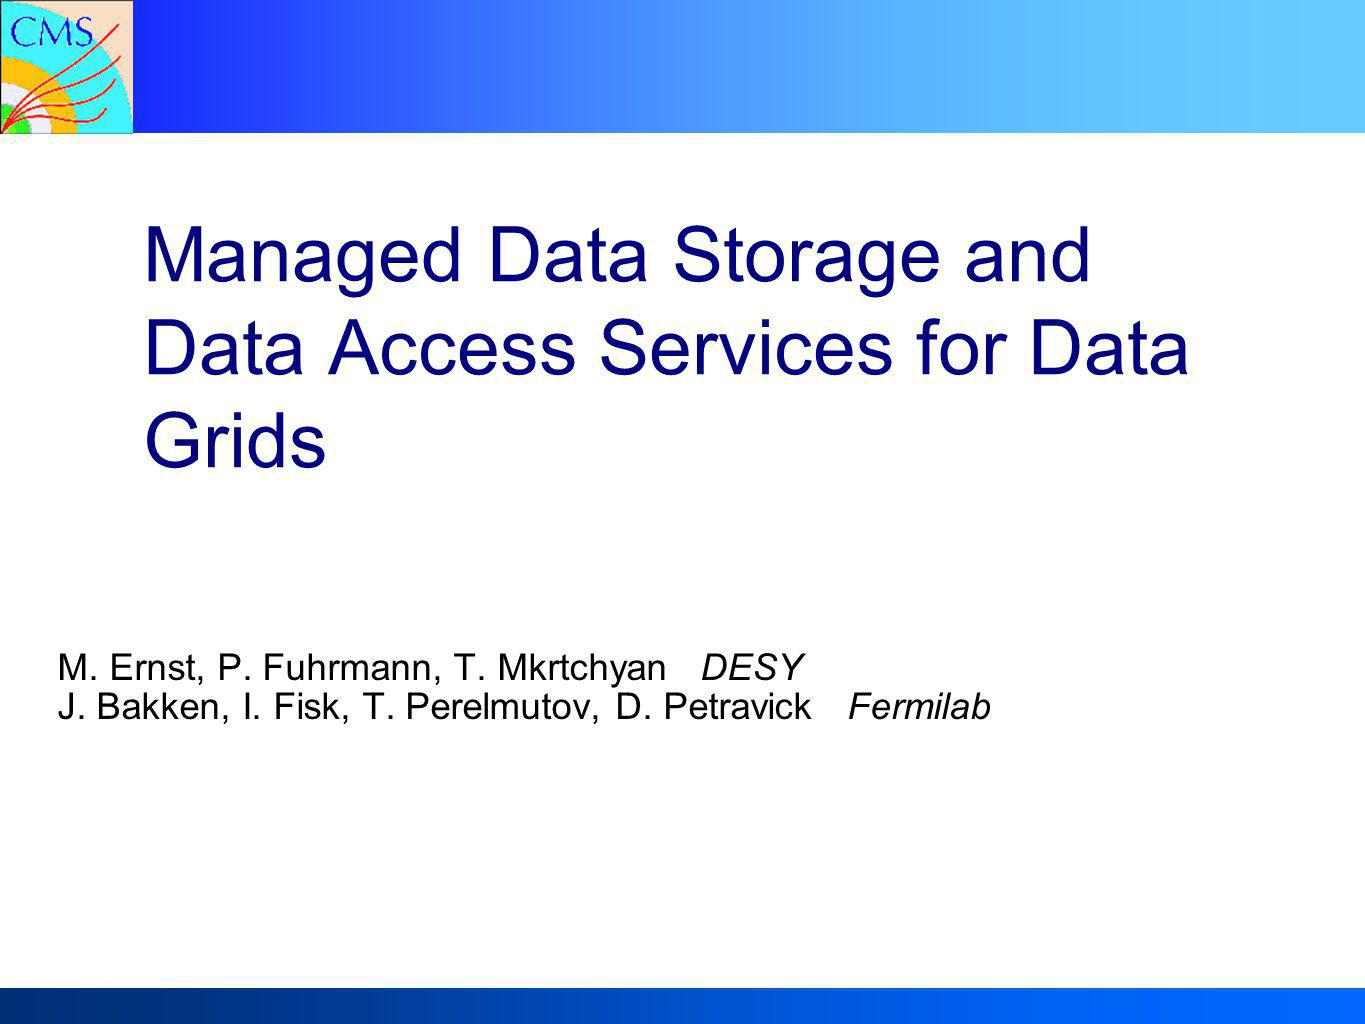 Michael Ernst DESYManaged Data Storage – CHEP2004 September 27, 2004 12 SRM/dCache – A brief Introduction SRM/dCache  Jointly developed by DESY and Fermilab  Provides the storage  Physical disks or arrays are combined into a common filesystem  POSIX compliant interface  Unix LD_PRELOAD library or access library compiled into the application  Handles load balancing and system failure and recovery  Application waits patiently while file staged from MSS (if applicable)  Provides a common interface to physical storage systems  Virtualizes interfaces and hides detailed implementation  Allows migration of technology  Provides the functionality for storage management  Supervises and manages transfers  Circumvents GridFTP scalability problem (SRM initiated transfers only)